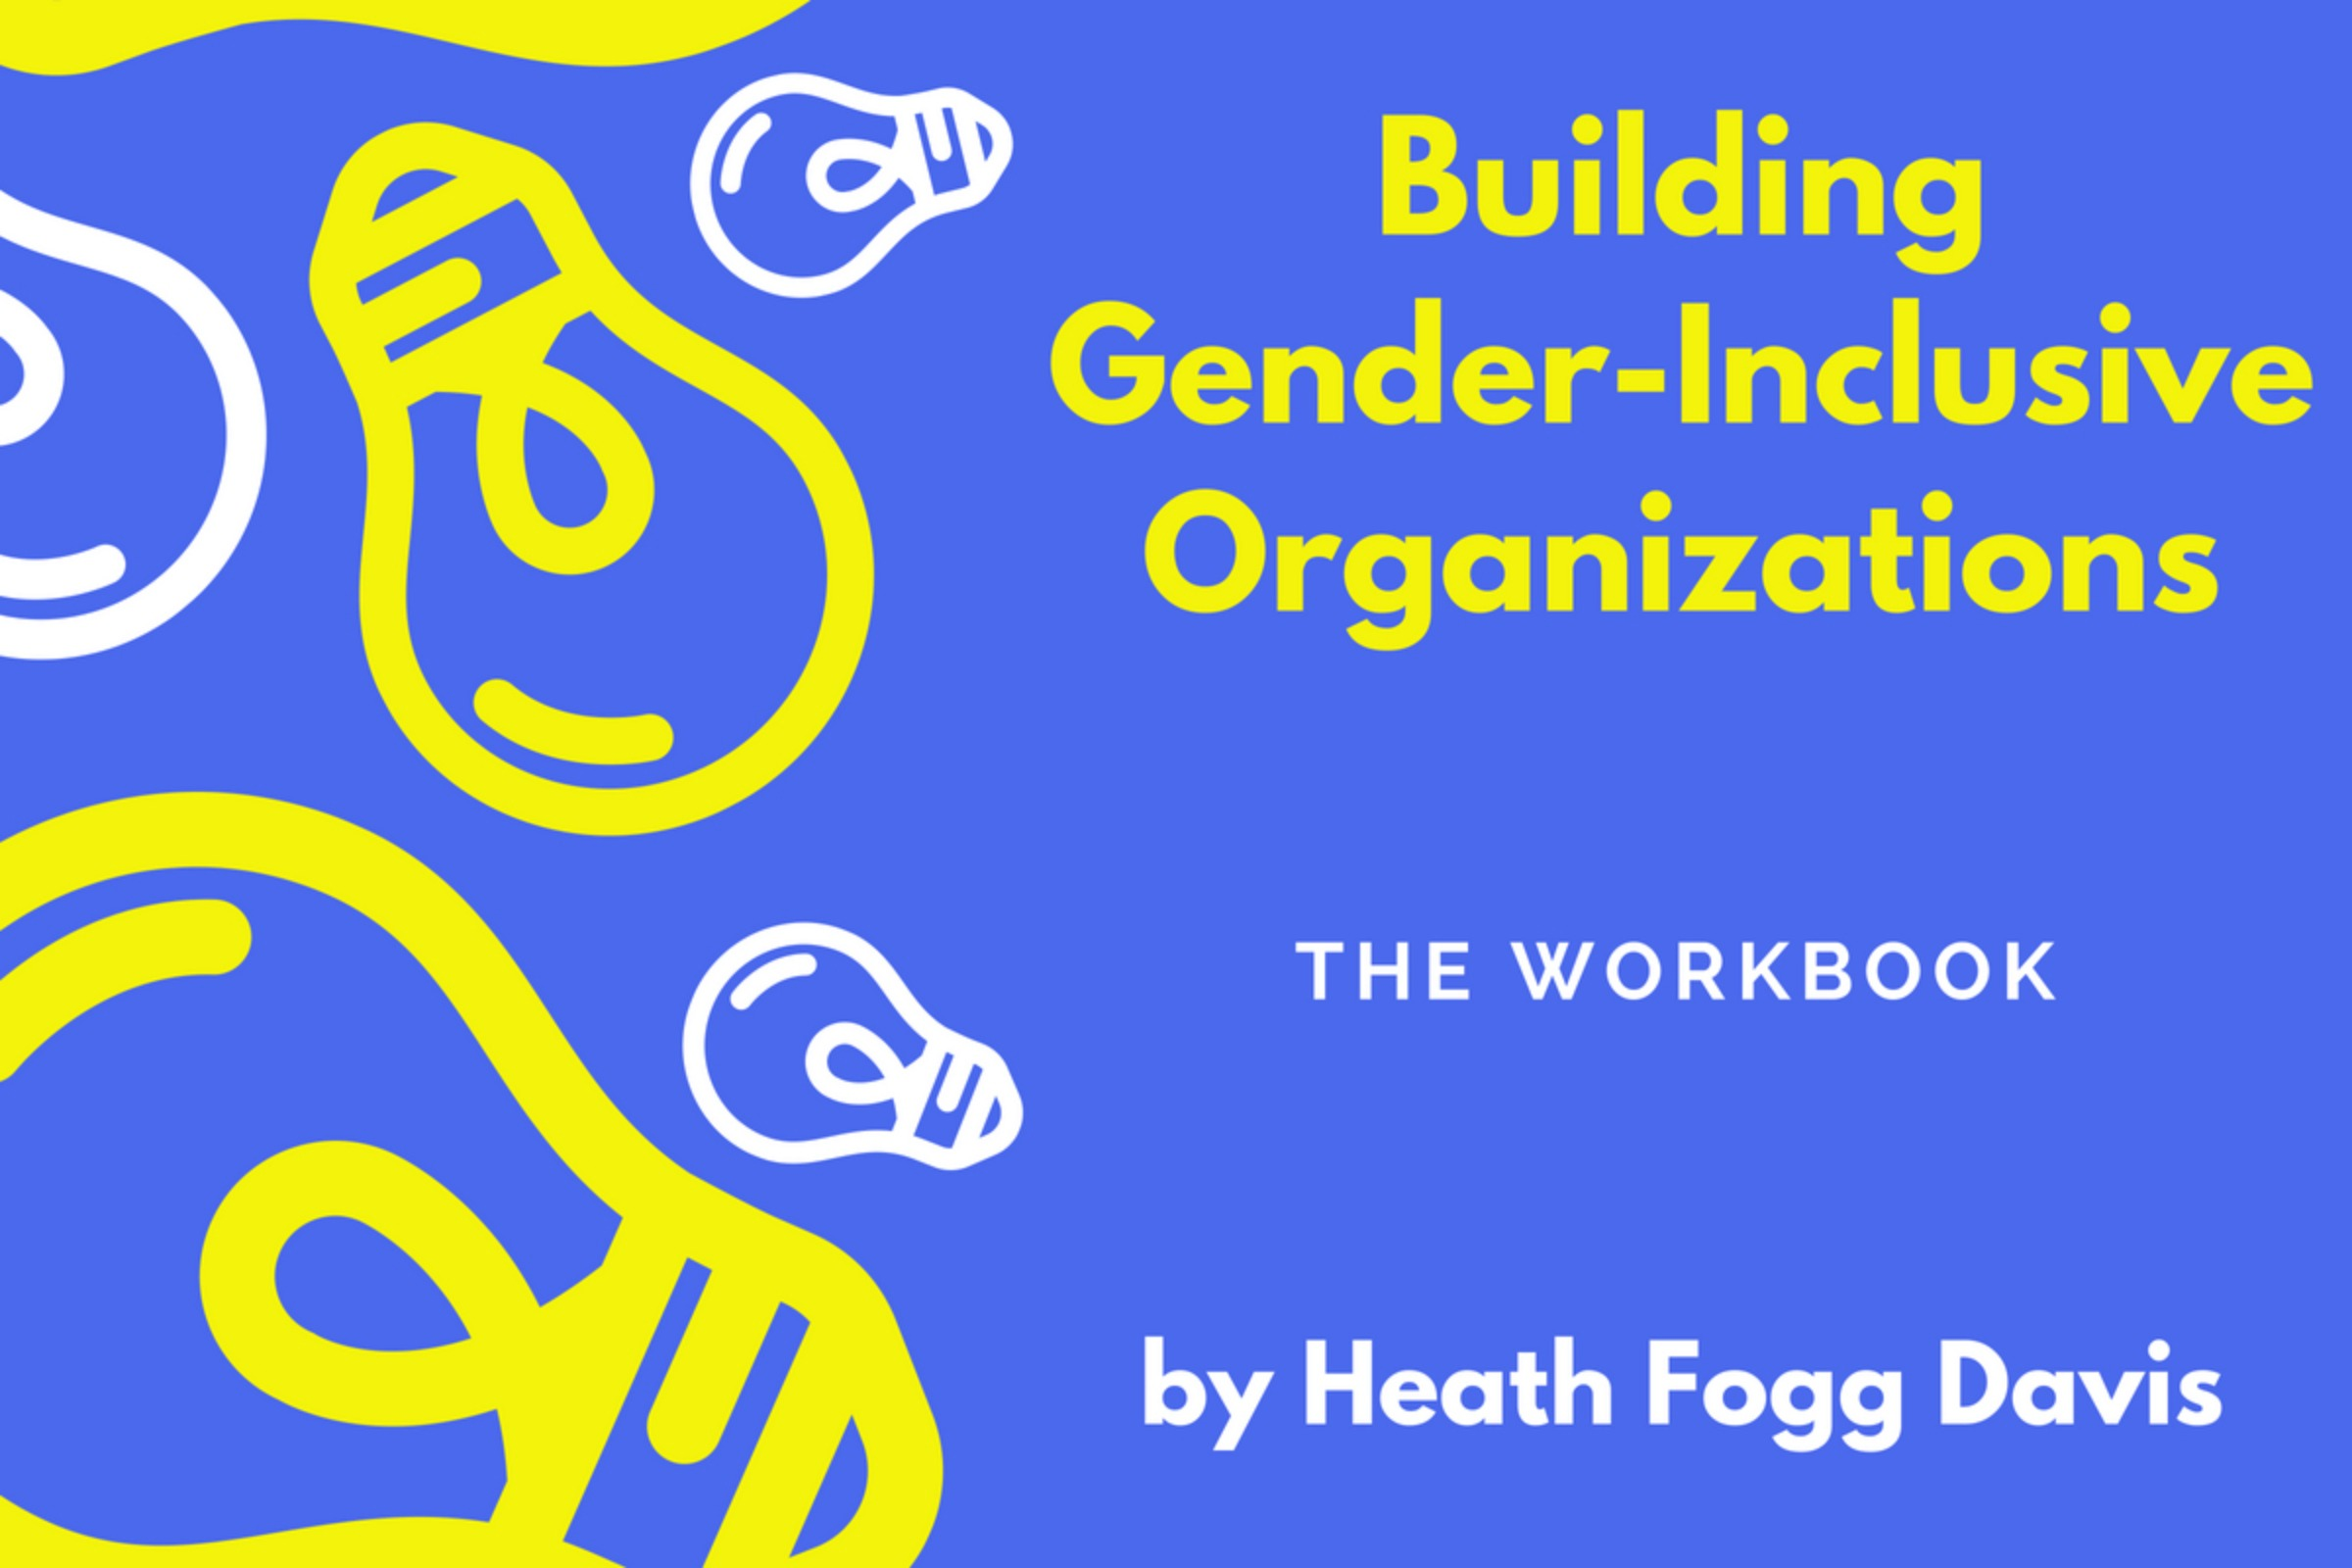 Building Gender-Inclusive Organizations: The Workbook (For Individuals please pay $12)